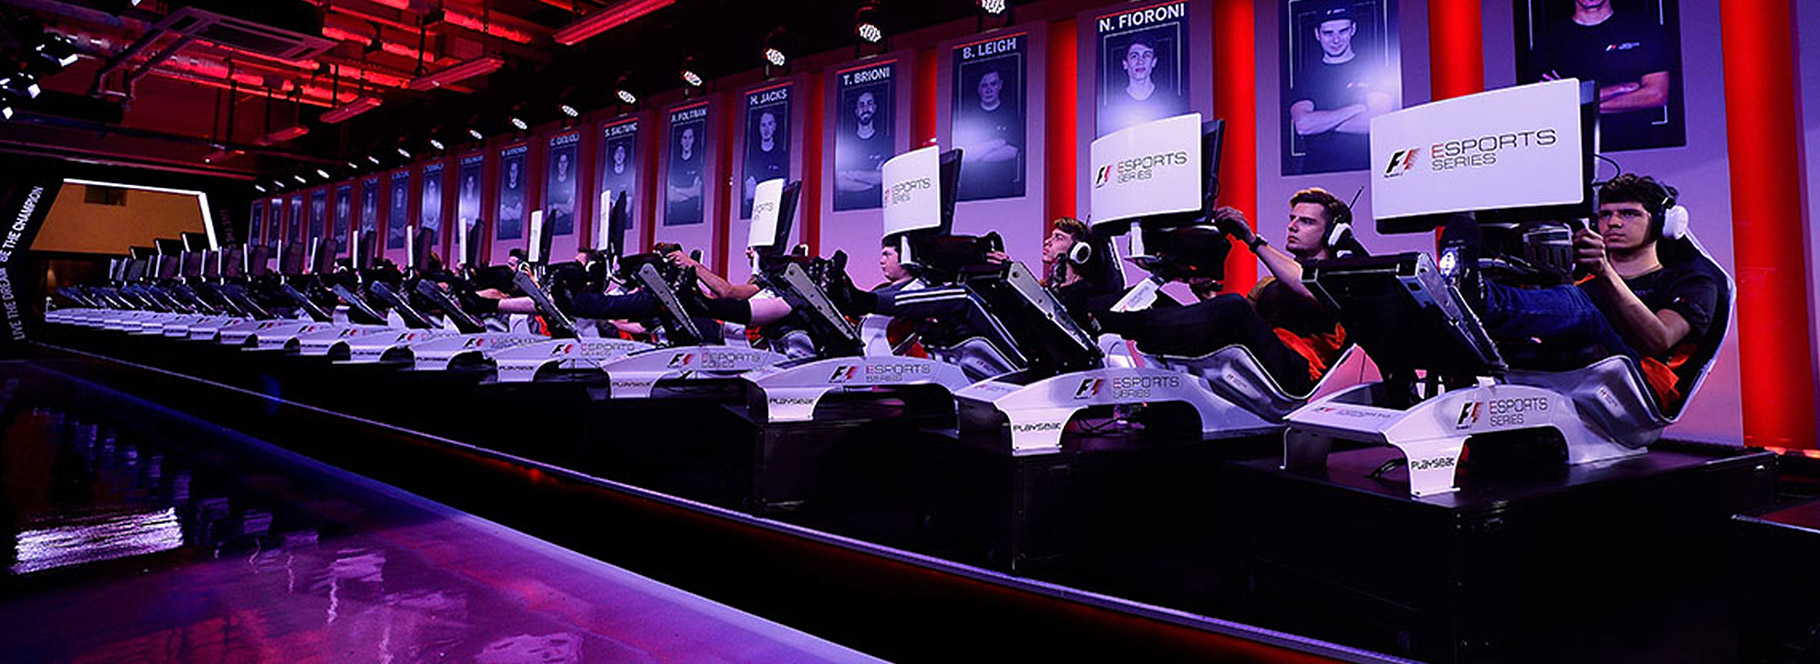 Playseat® F1 White and F1 Esport Series competition